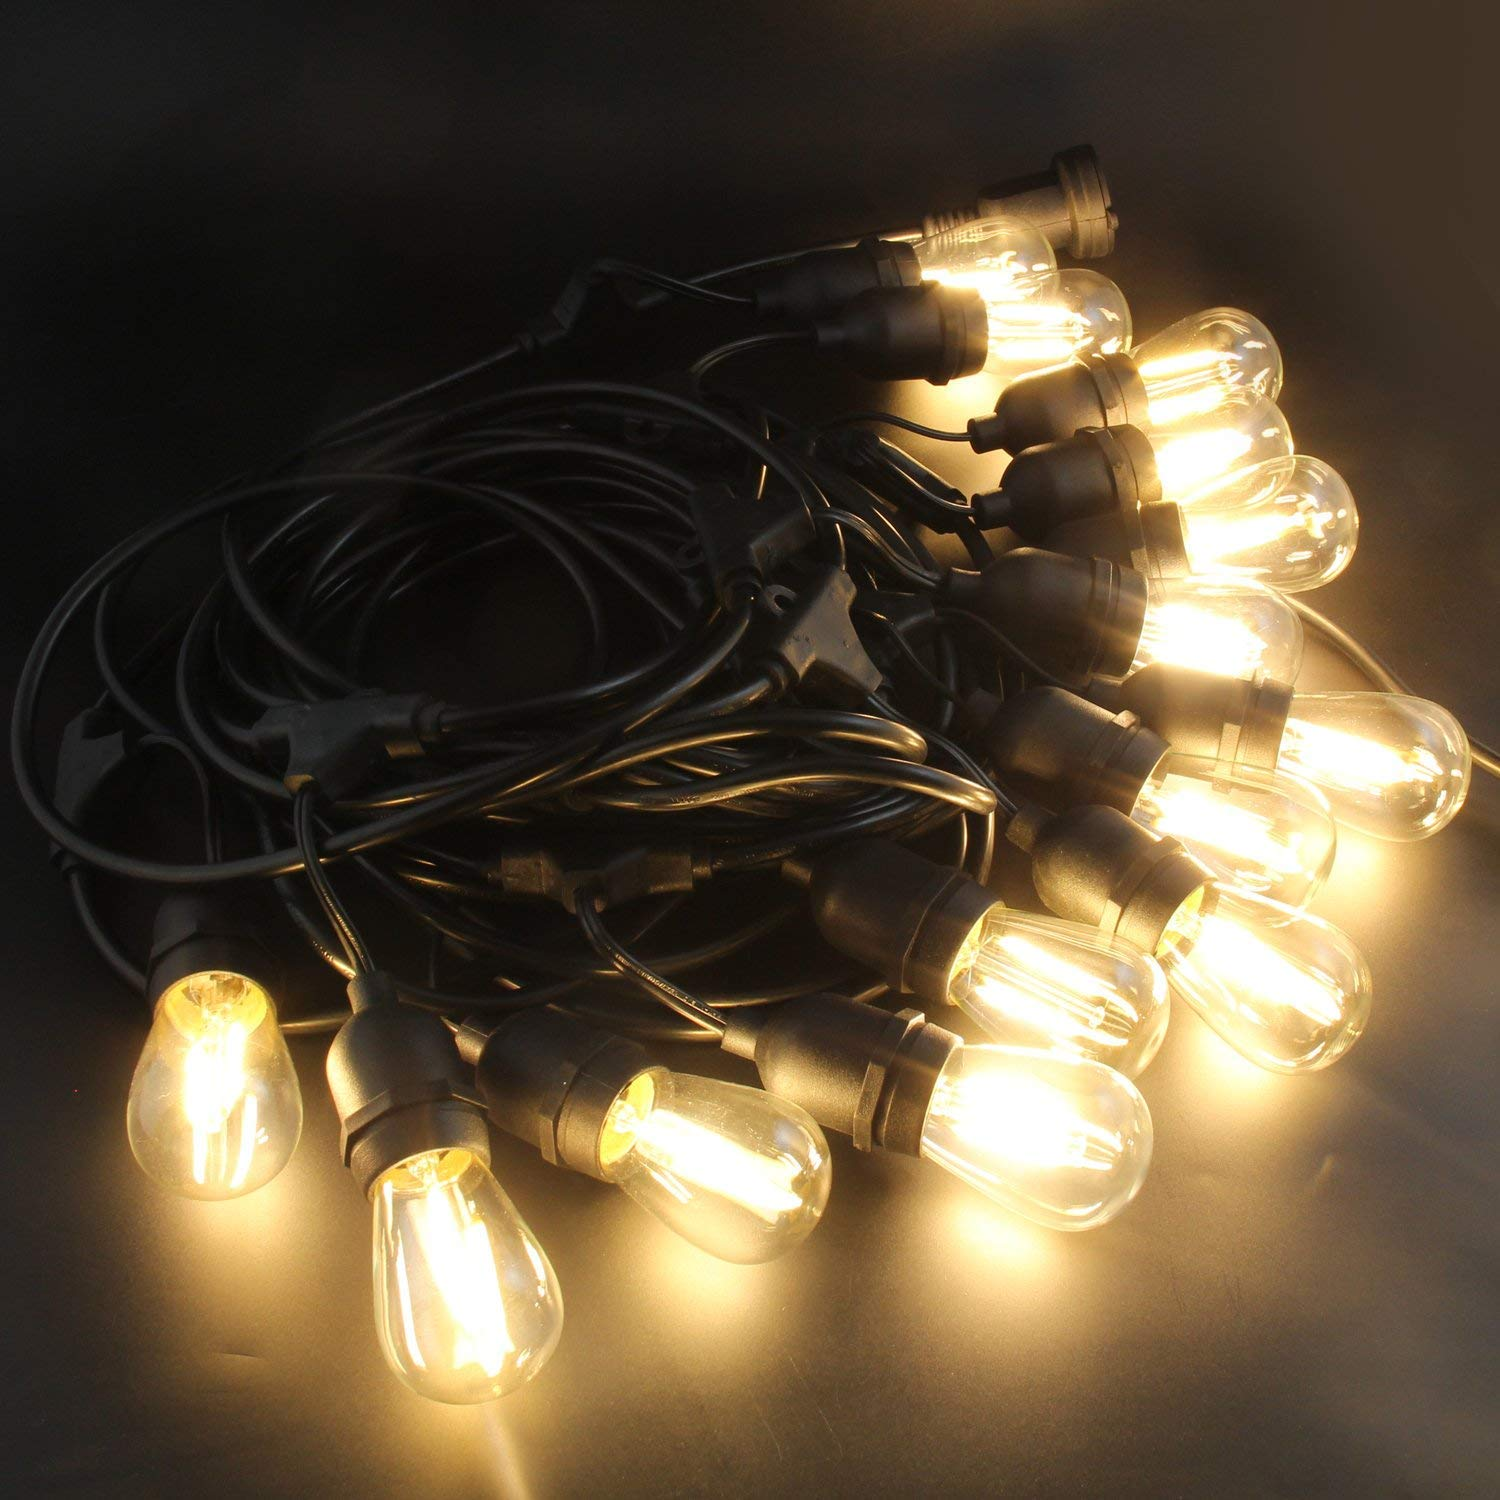 Only compatible with BRIMAX outdoor string lights BRIMAX 9.8Ft//3m Festoon Lights Waterproof Outdoor Extension Lead for BRIMAX S14 LED IP65 48ft Festoon Lights,